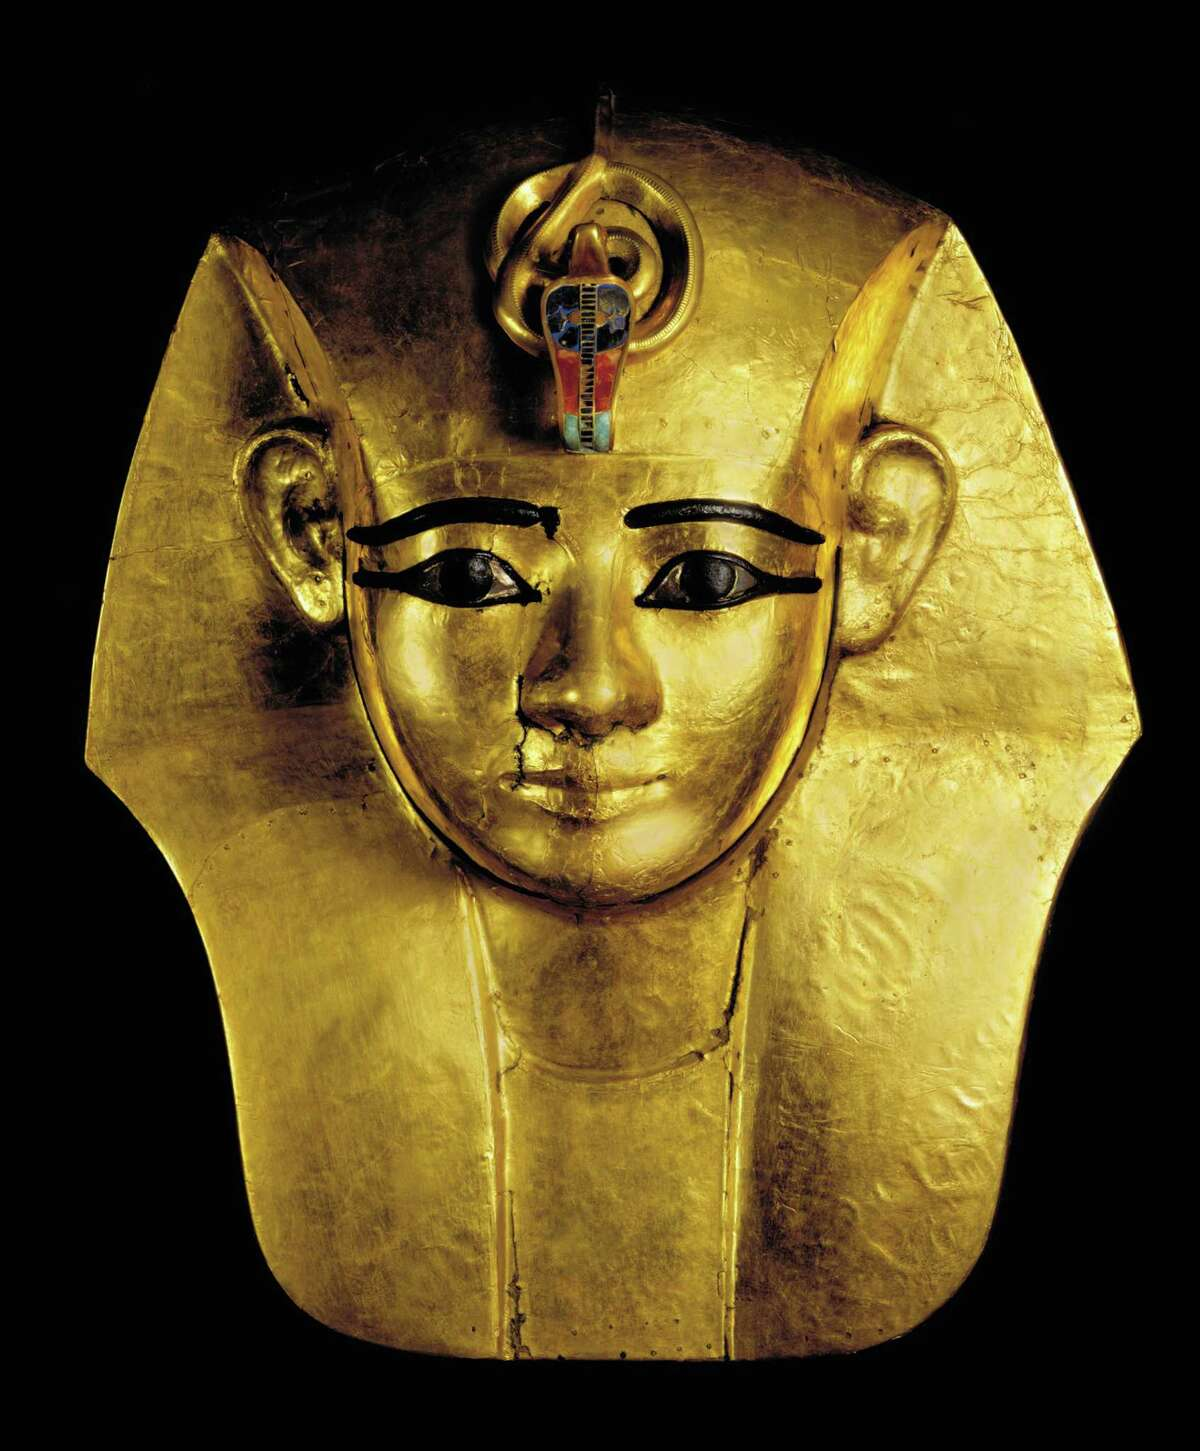 """Gold Mask from king's Wooden Coffin- Inlaid Uraeus from """"Ramses the Great and the Gold of the Pharaohs."""" The exhibition is created by Cityneon, an entertainment experience company, with the Supreme Council of Antiquities of the Arab Republic of Egypt, World Heritage Exhibitions and the Houston Museum of Natural Science."""